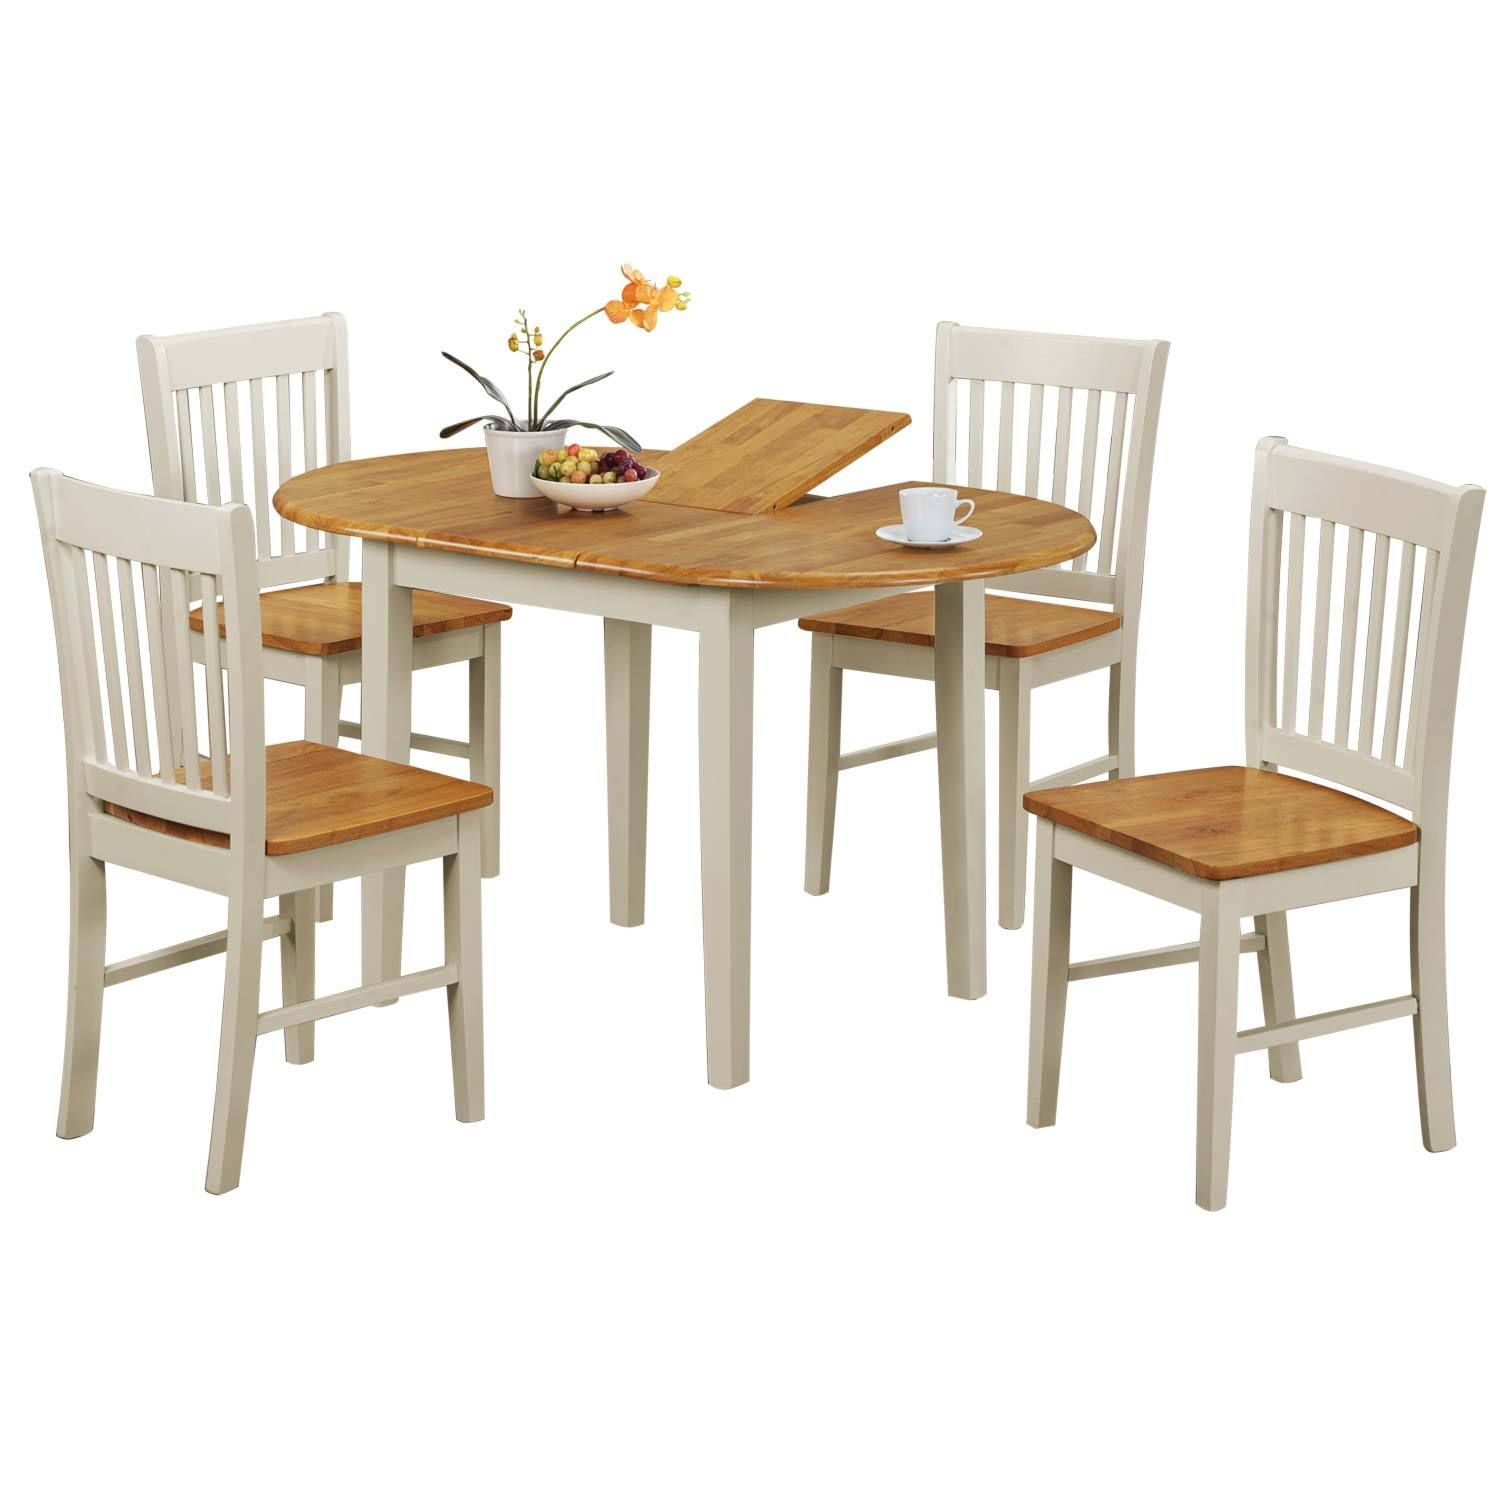 Oak Kitchen Tables And Chairs Sets: Kentucky Extending Dining Table And Four Chairs Set